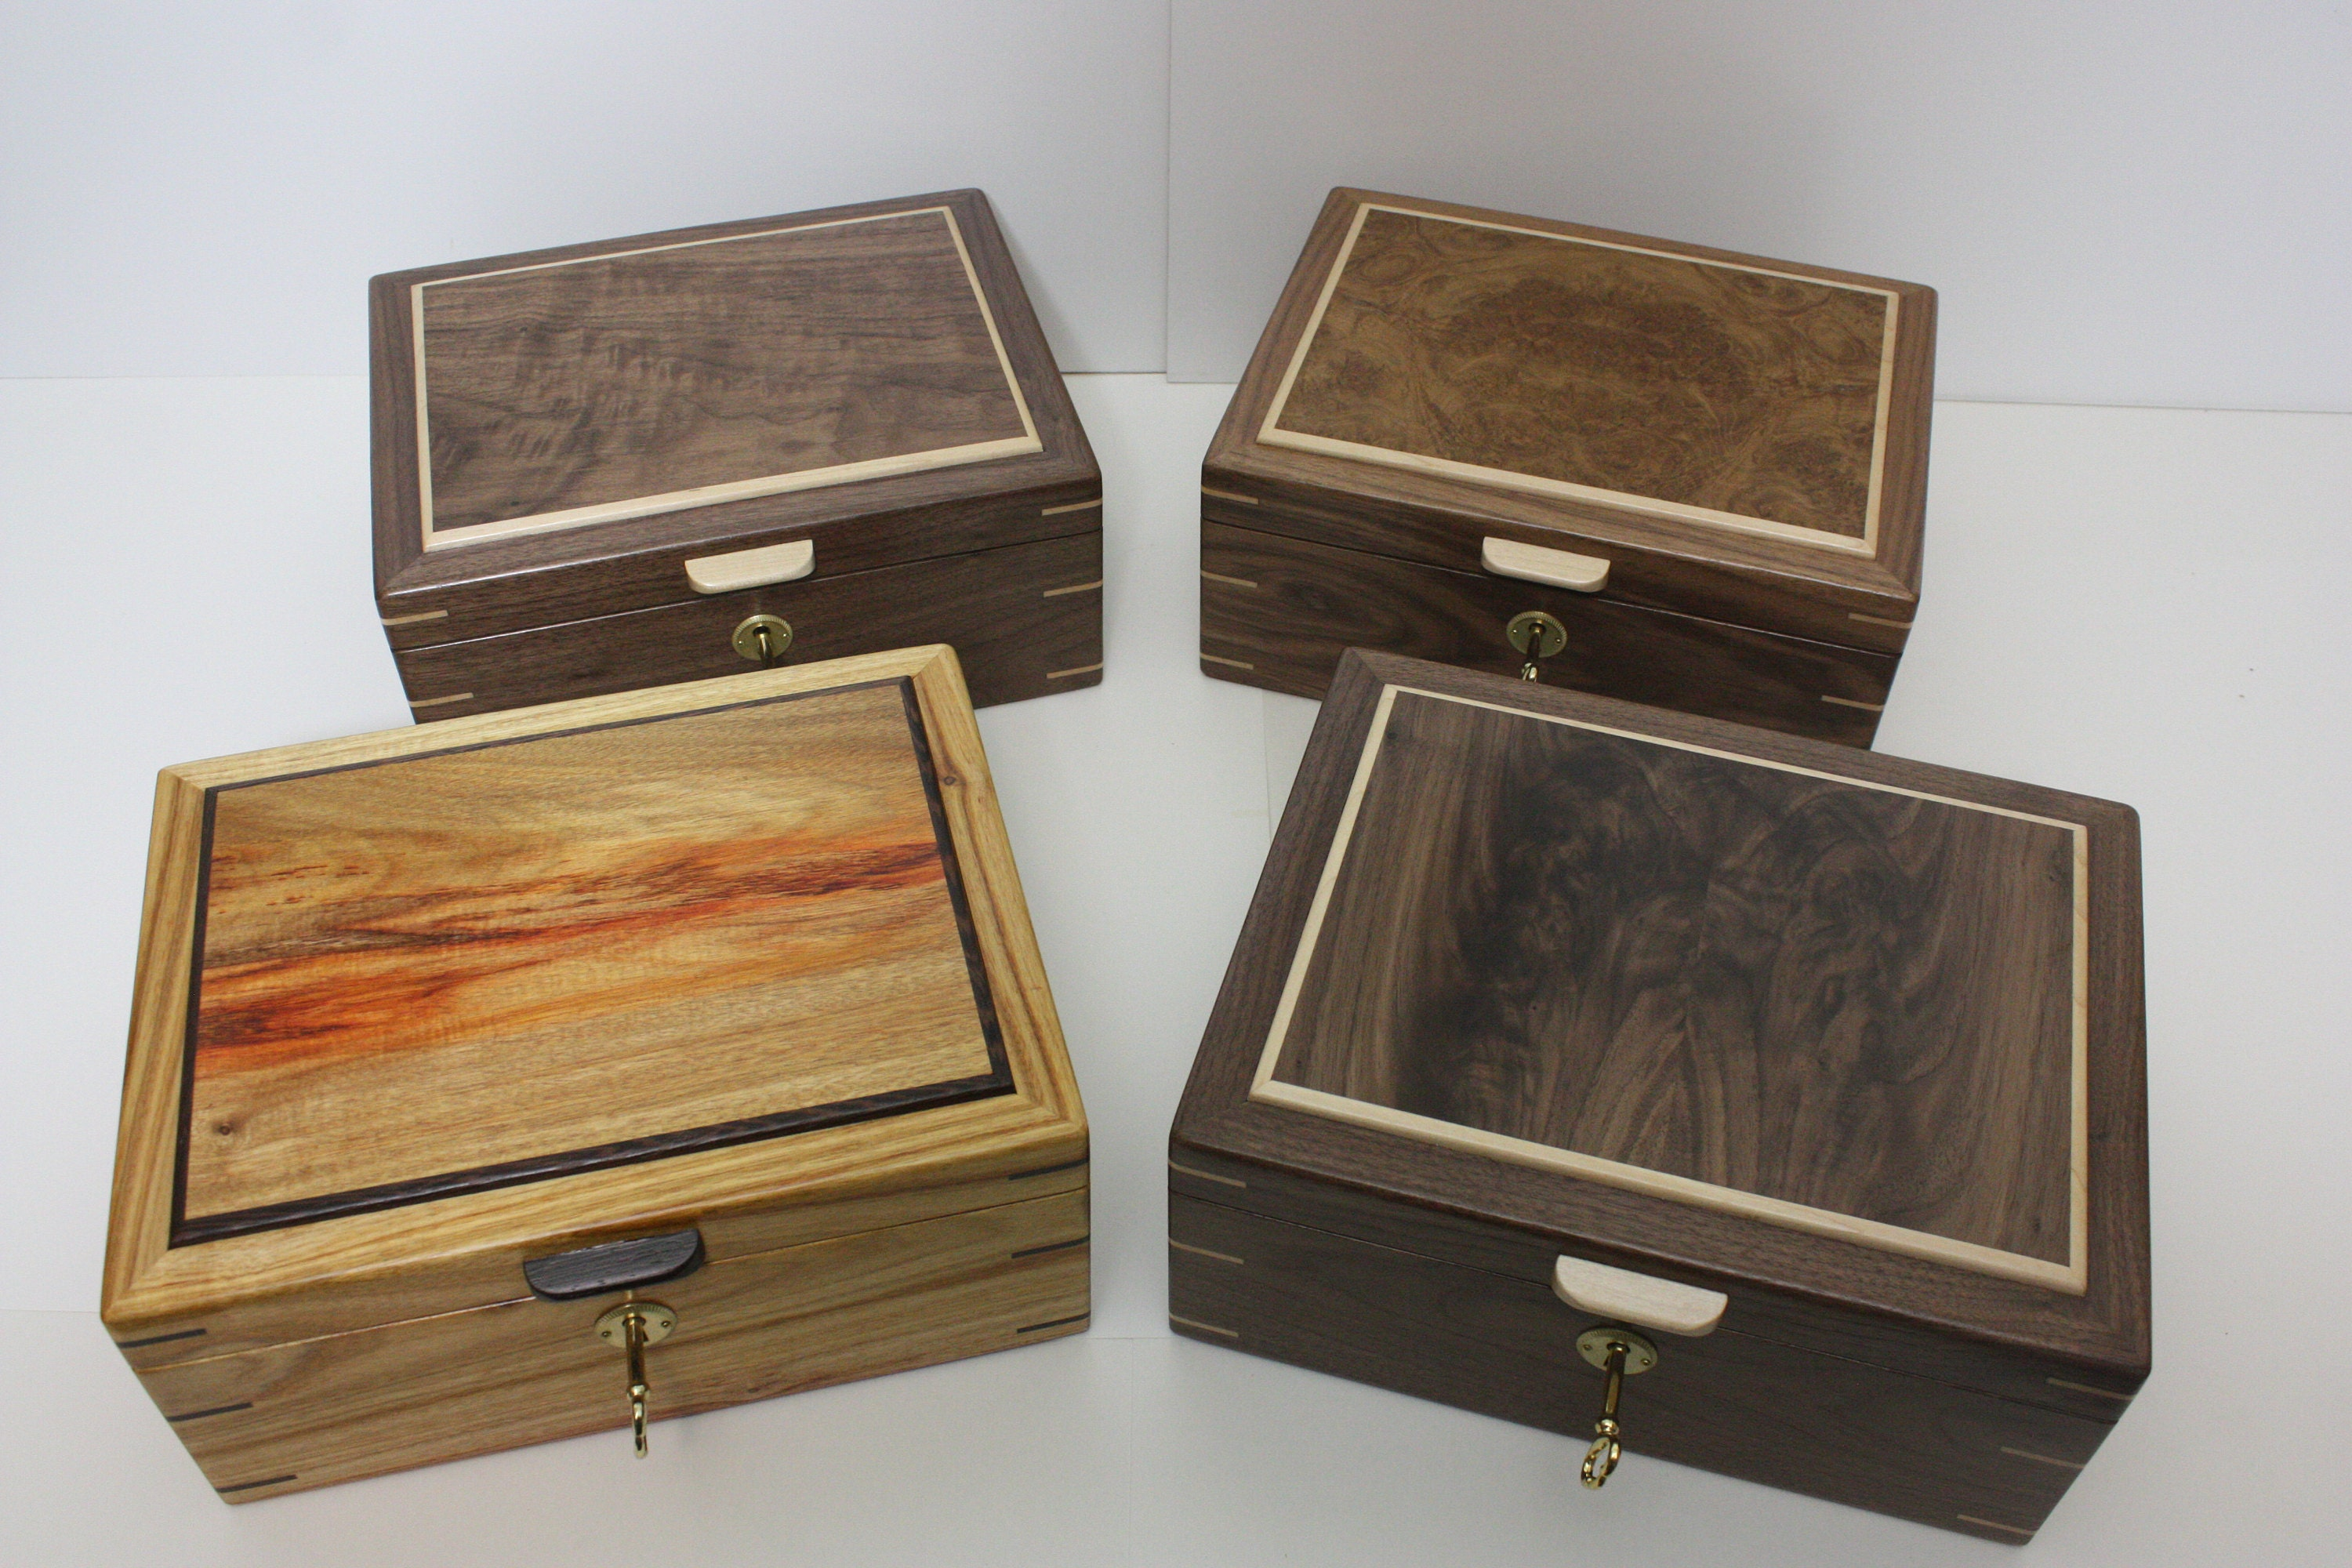 Black Walnut Locking Box For Sale Handmade BoxHandcrafted Wooden BoxBox With Lift Out TrayHandmade Tray And DividersMens